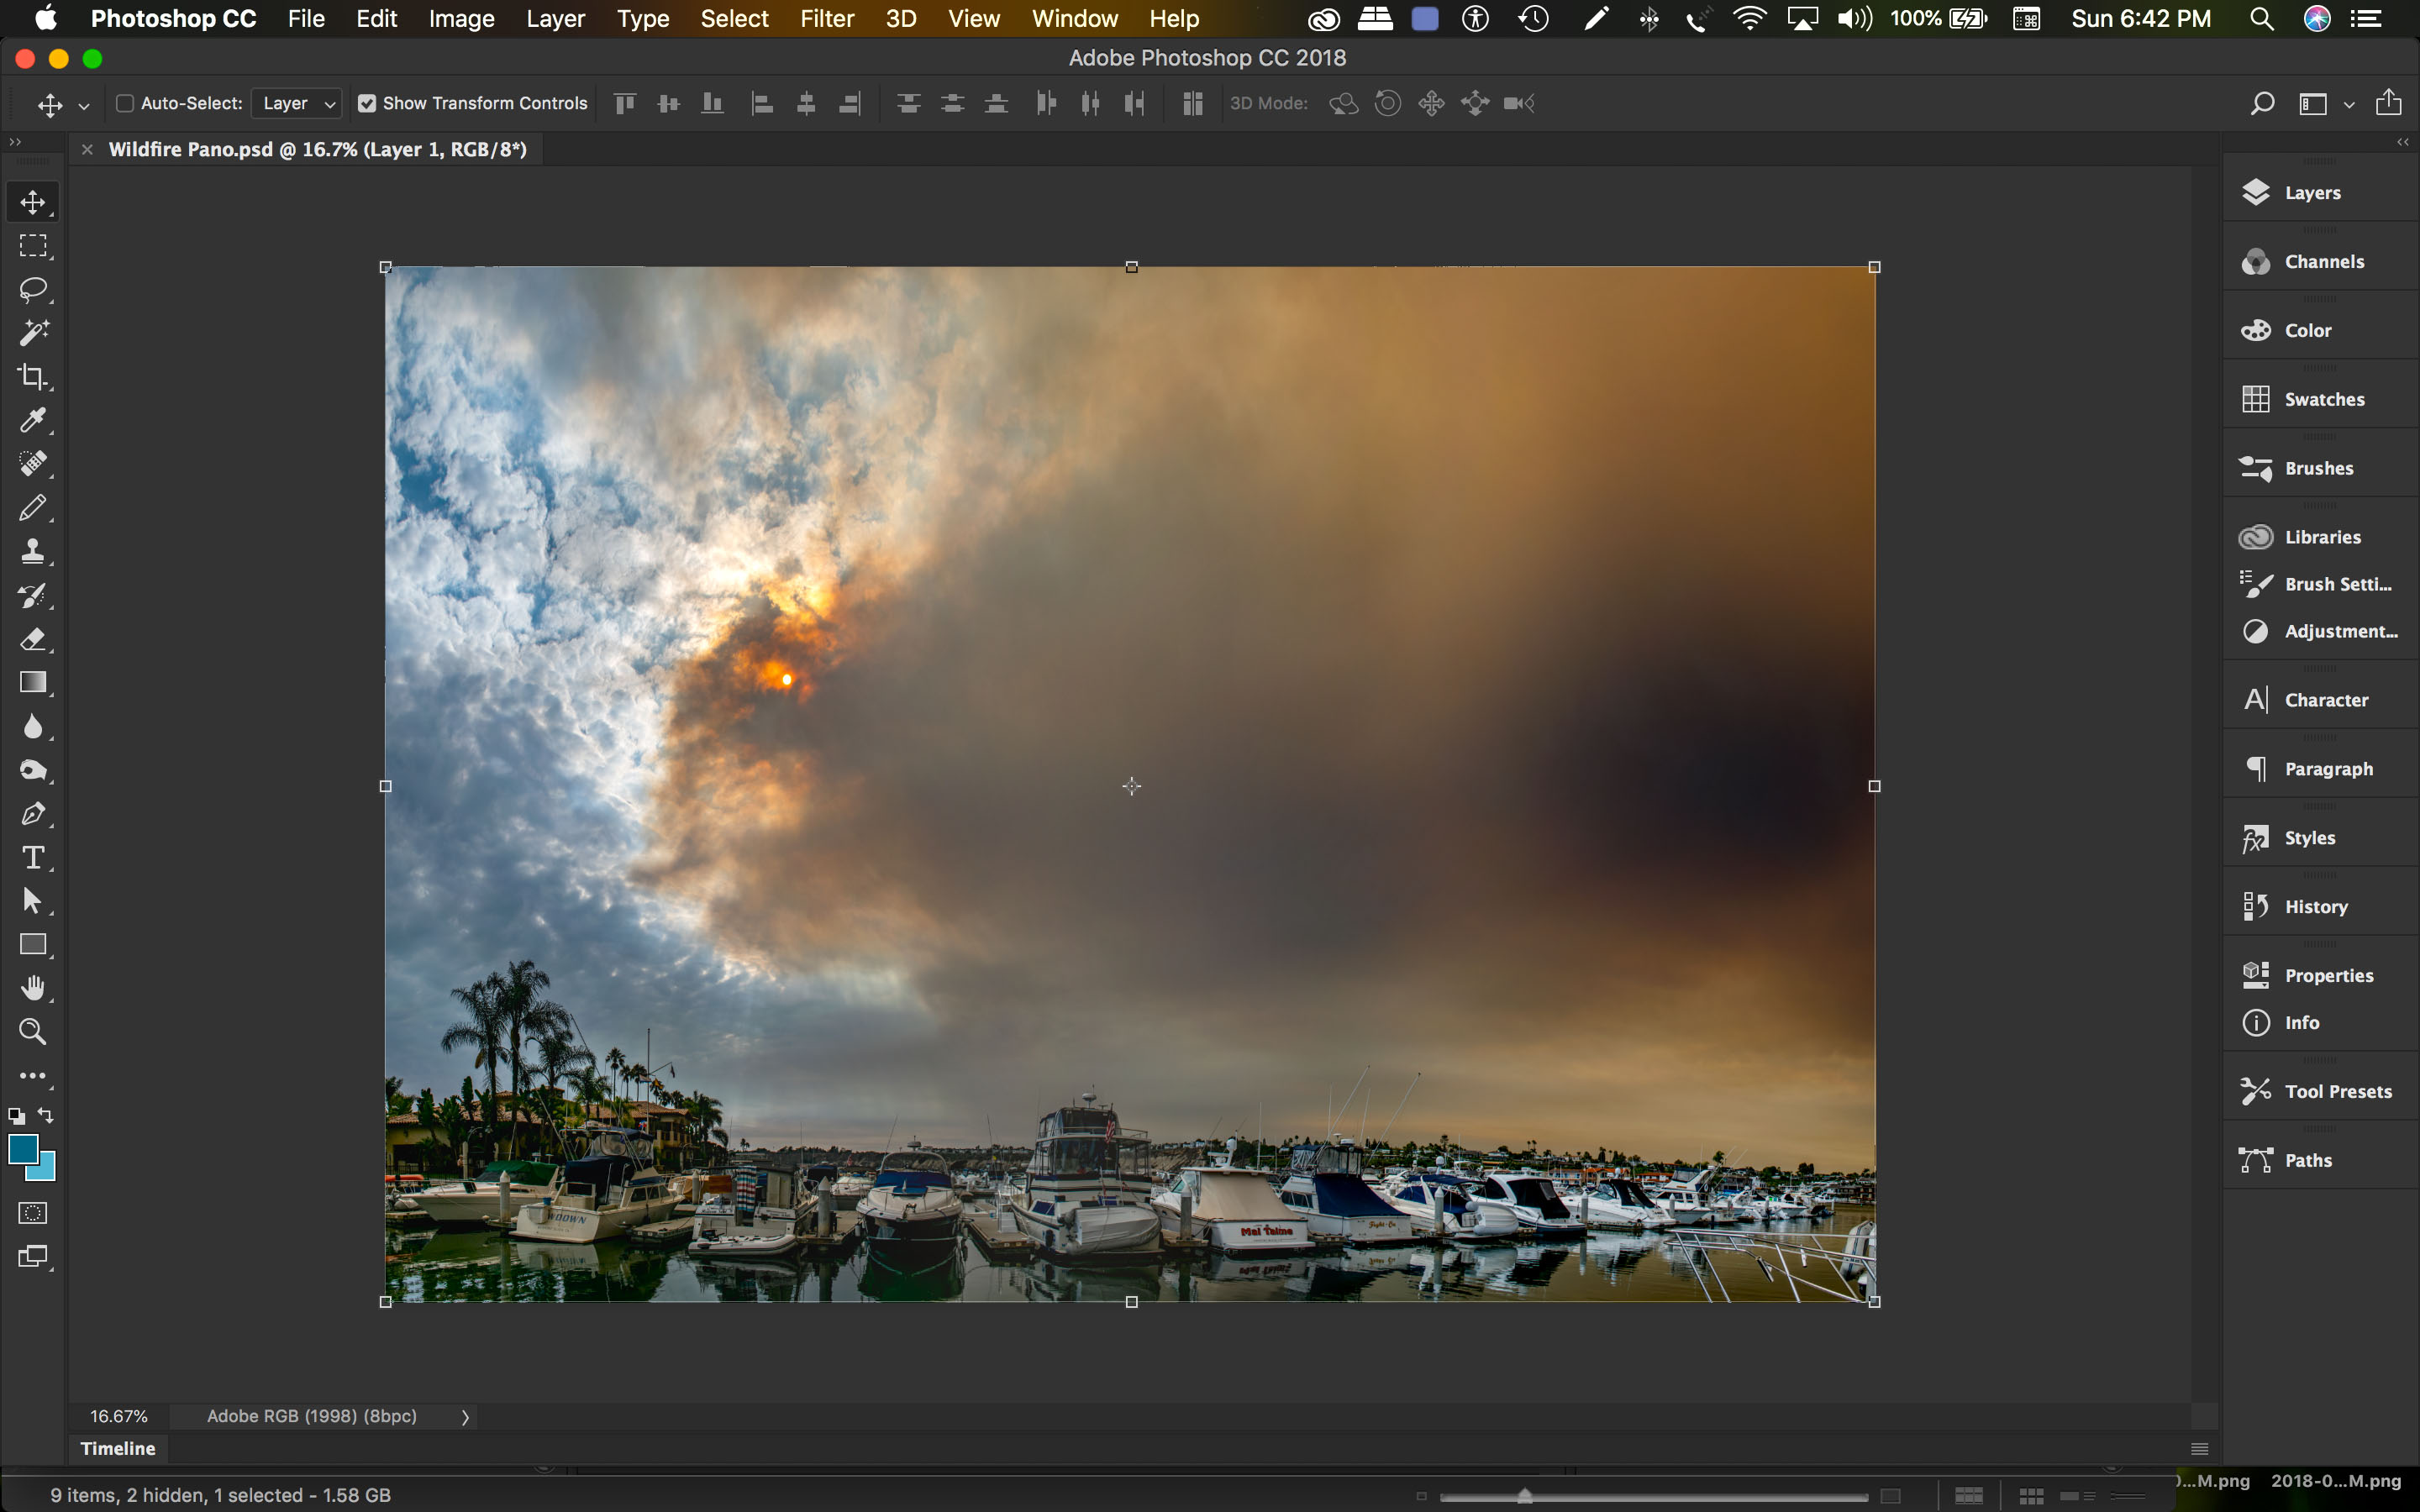 Wildfire_Pano Created_in_PS_fm_Indiv_Files.jpg